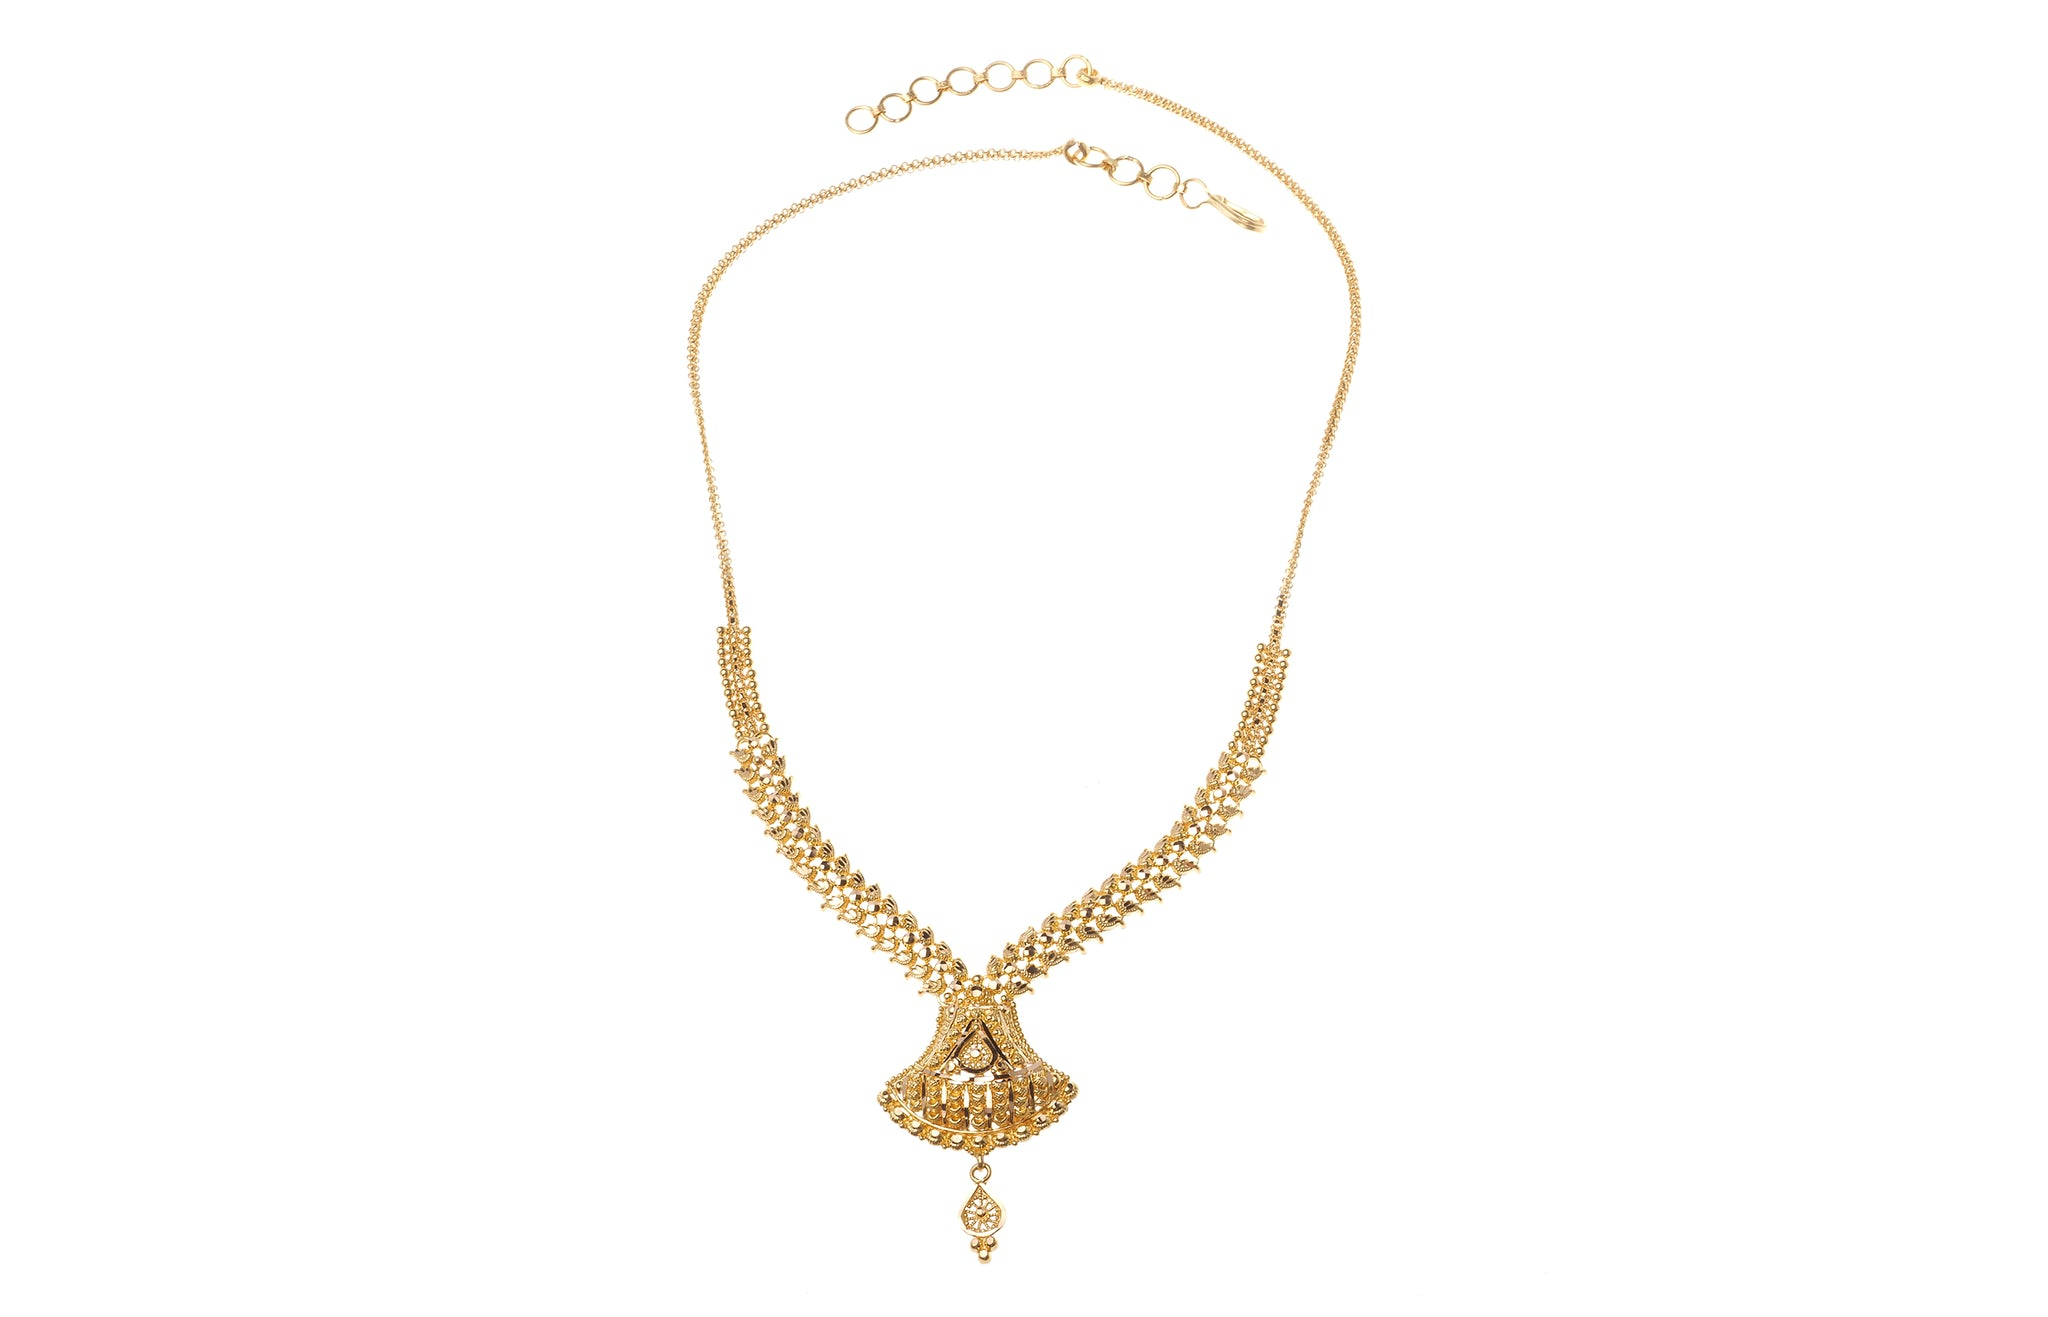 22 carat gold necklace and earrings set ne 6470 online price 22 carat gold necklace and earrings set ne 6470 online price only aloadofball Gallery